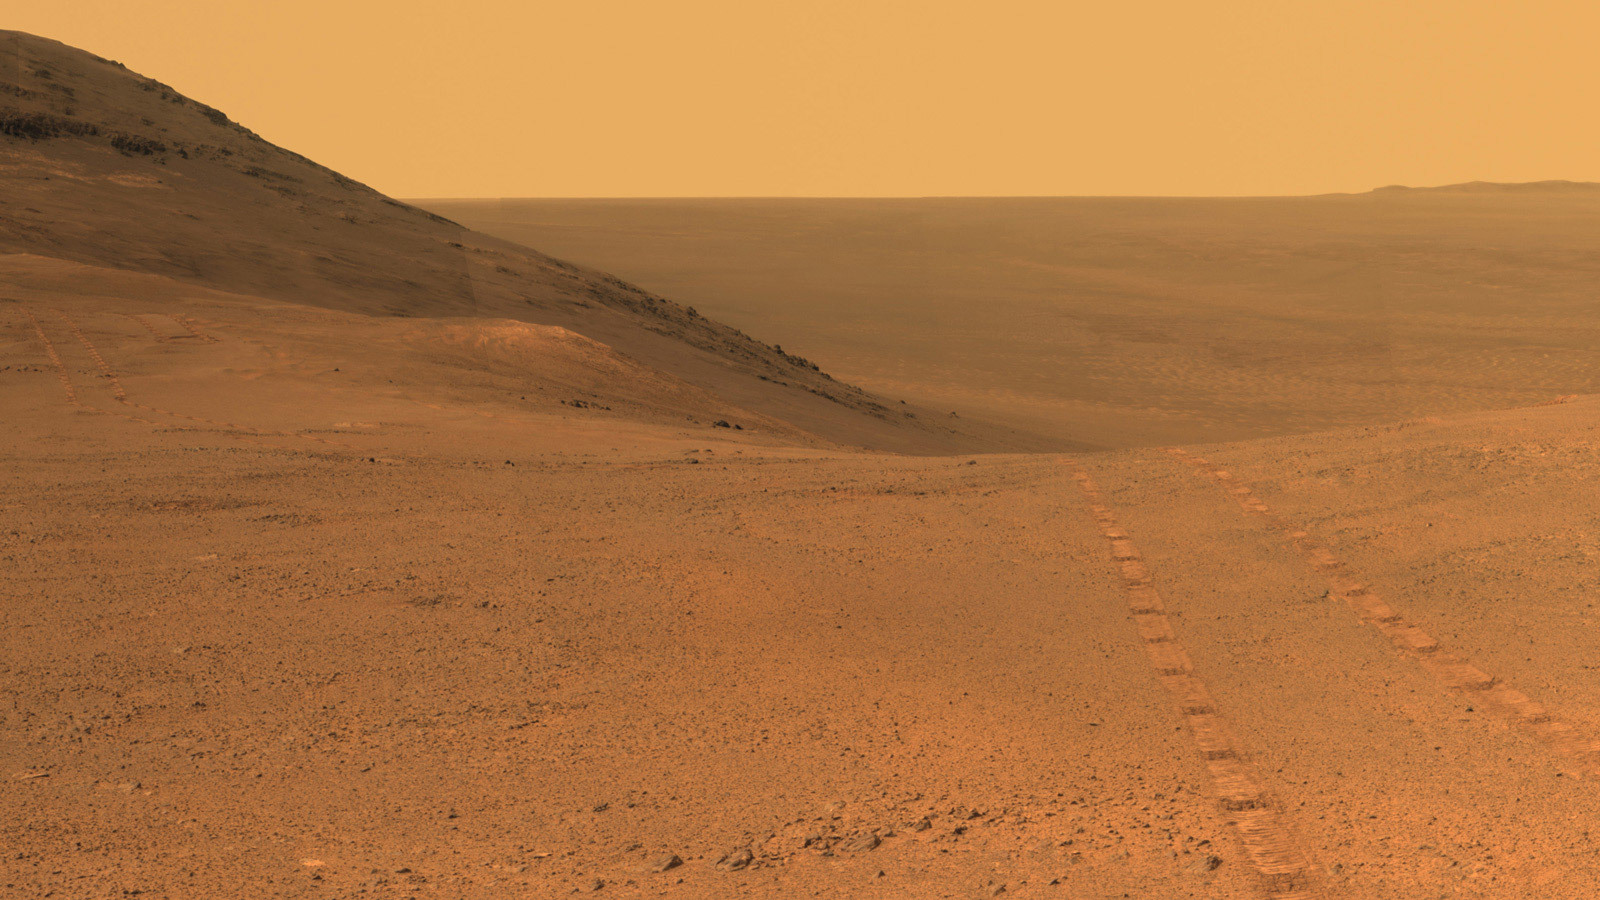 Mars Surface - Rover Tracks